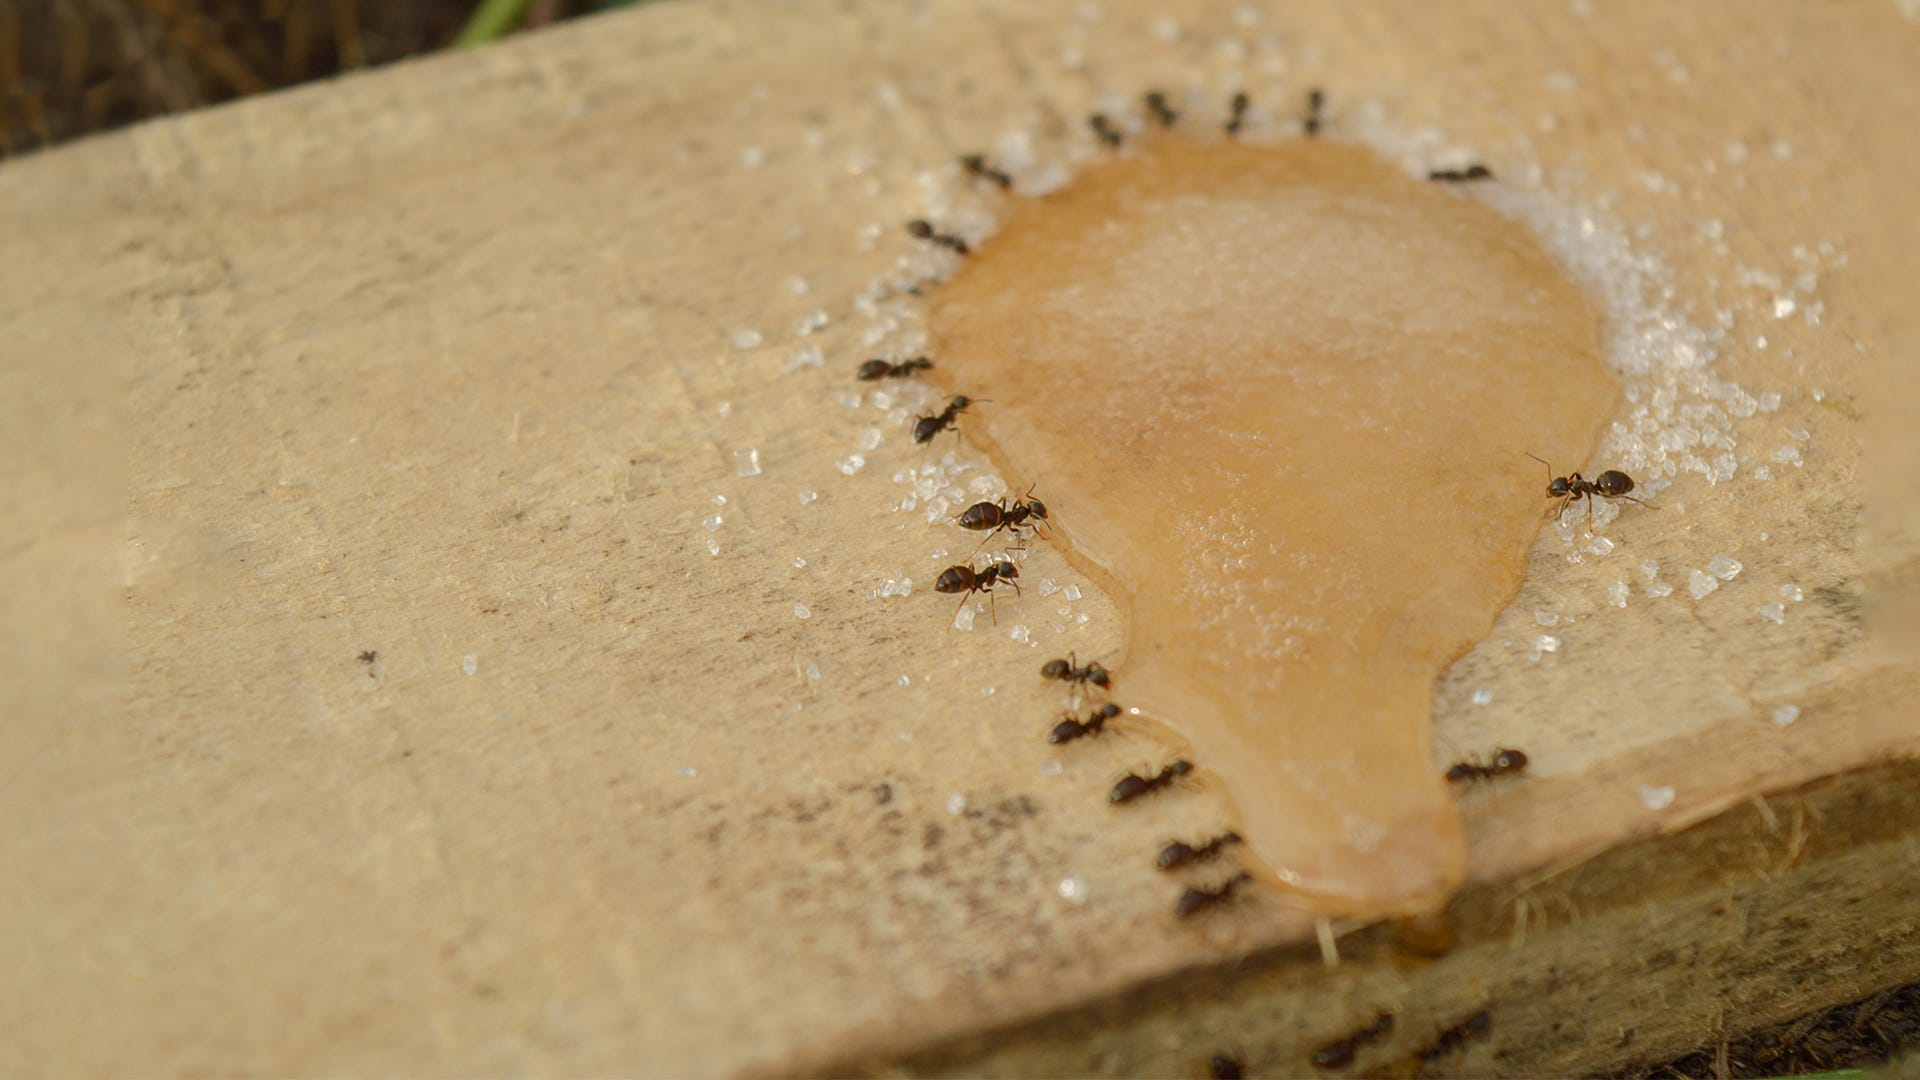 How to Clean Up Spilled Ant Bait